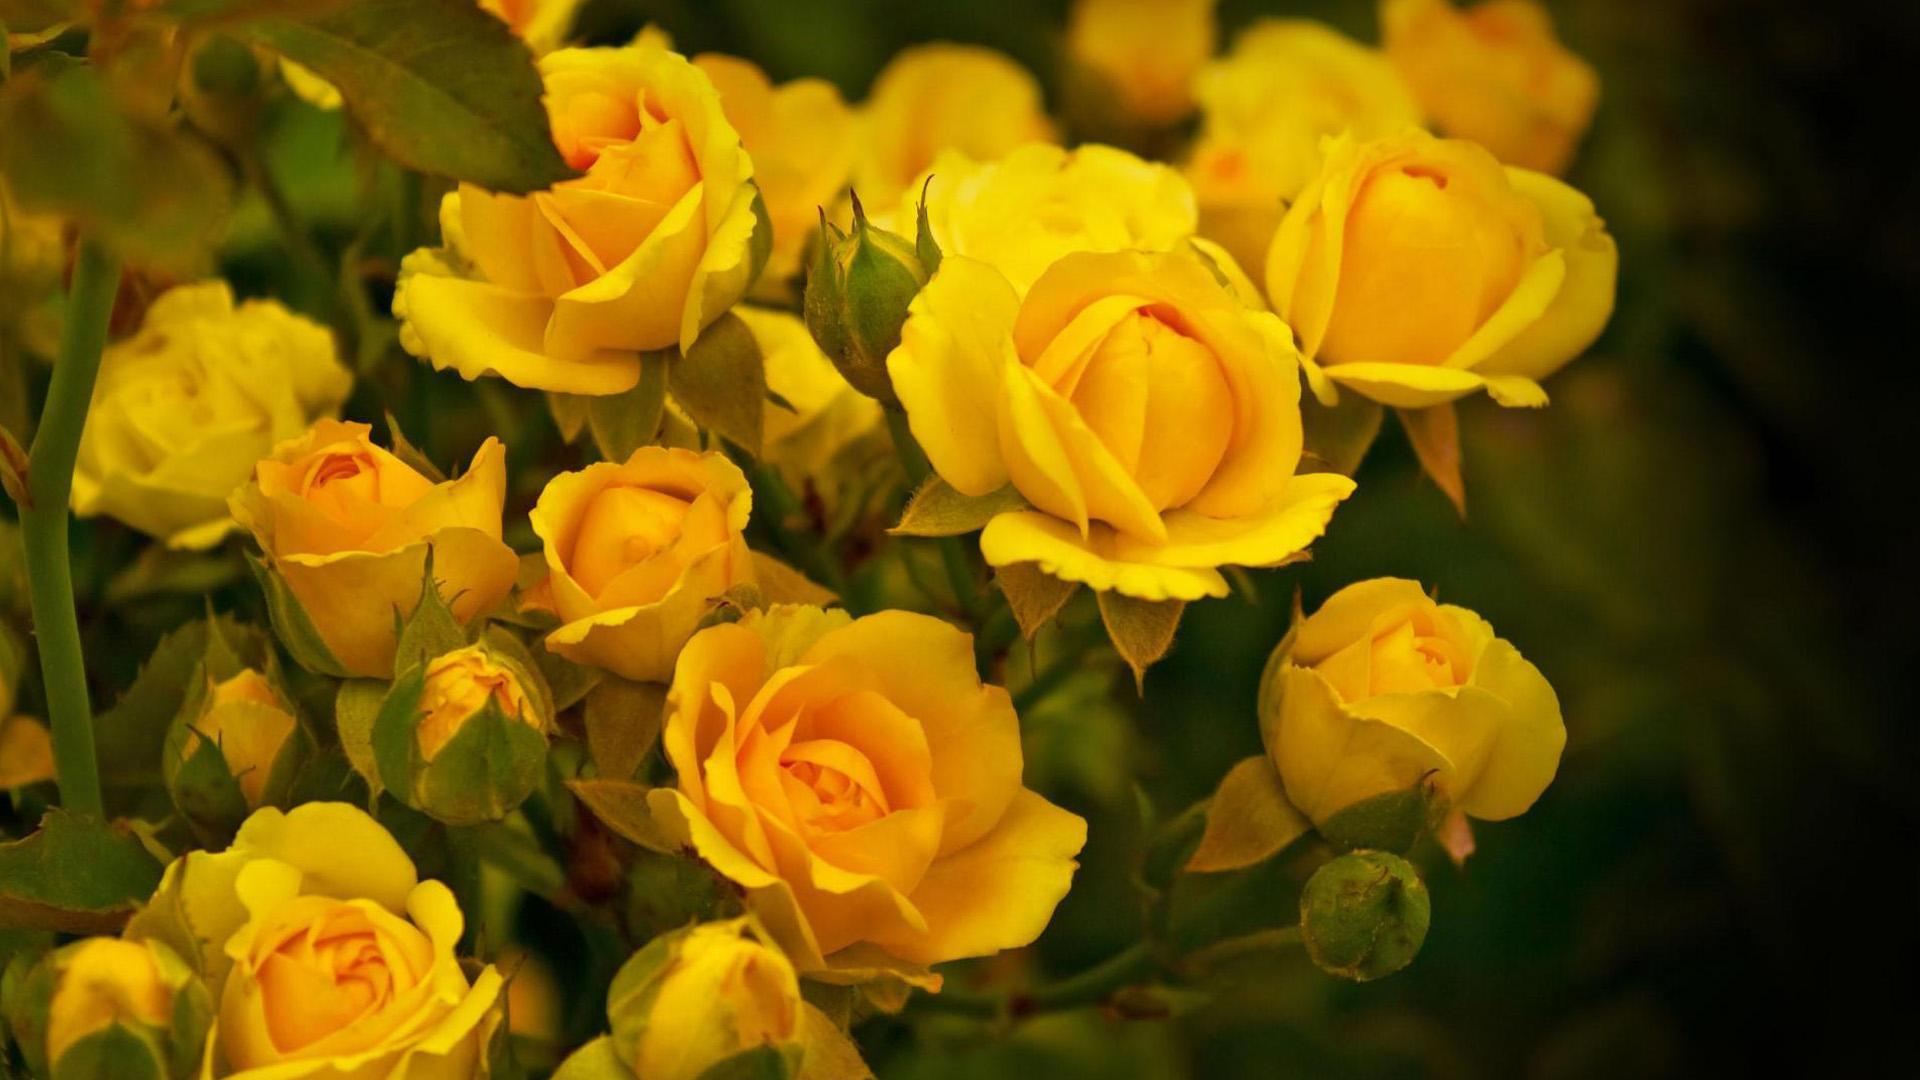 Beautiful Yellow Rose Flowers Wallpapers Images Free Download 1920x1080